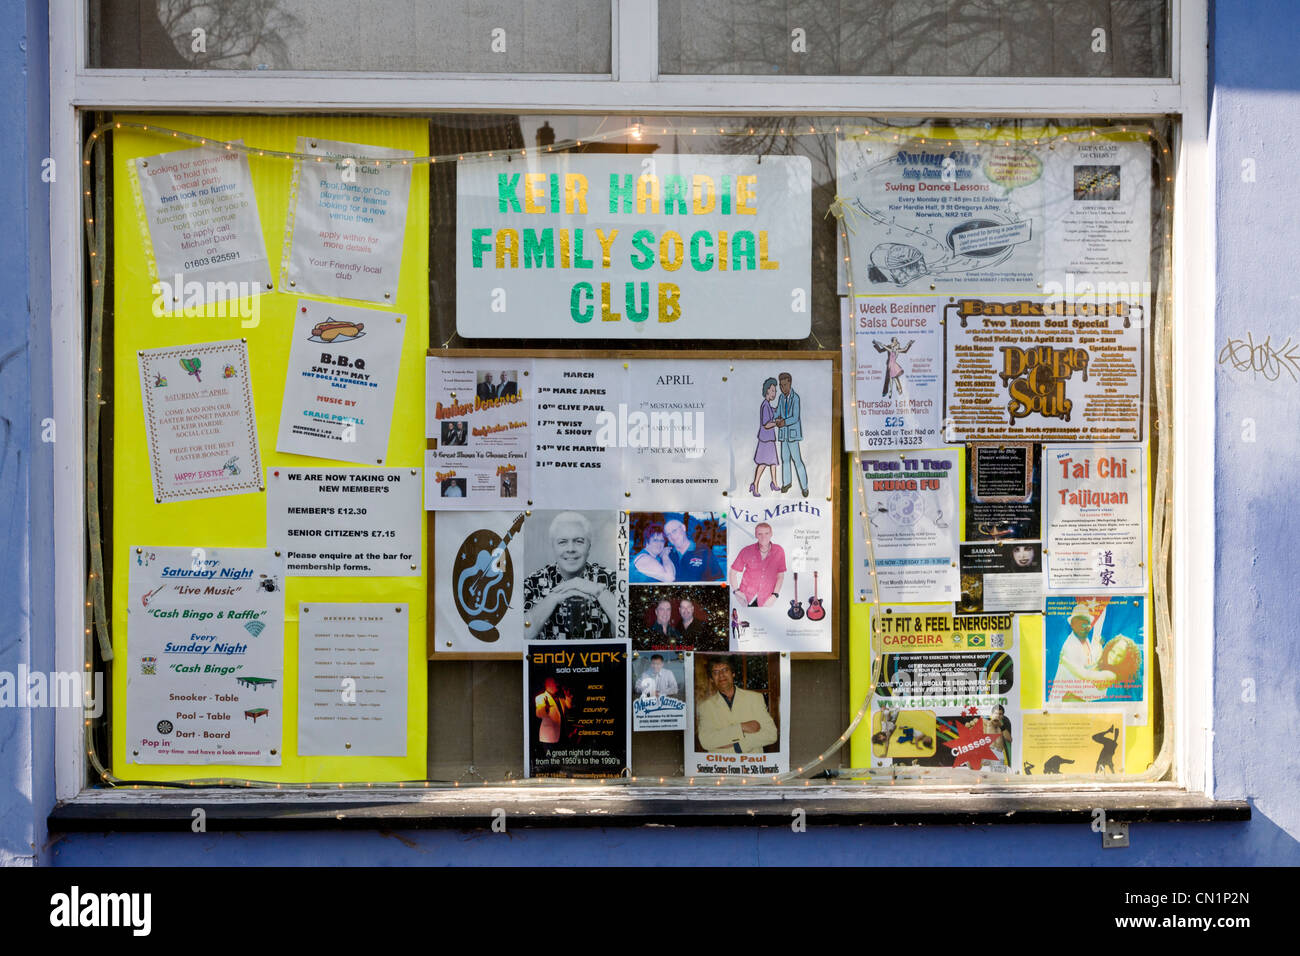 The Keir Hardie Hall working mens club window in St Gregory's Alley, Norwich, Norfolk, UK. - Stock Image